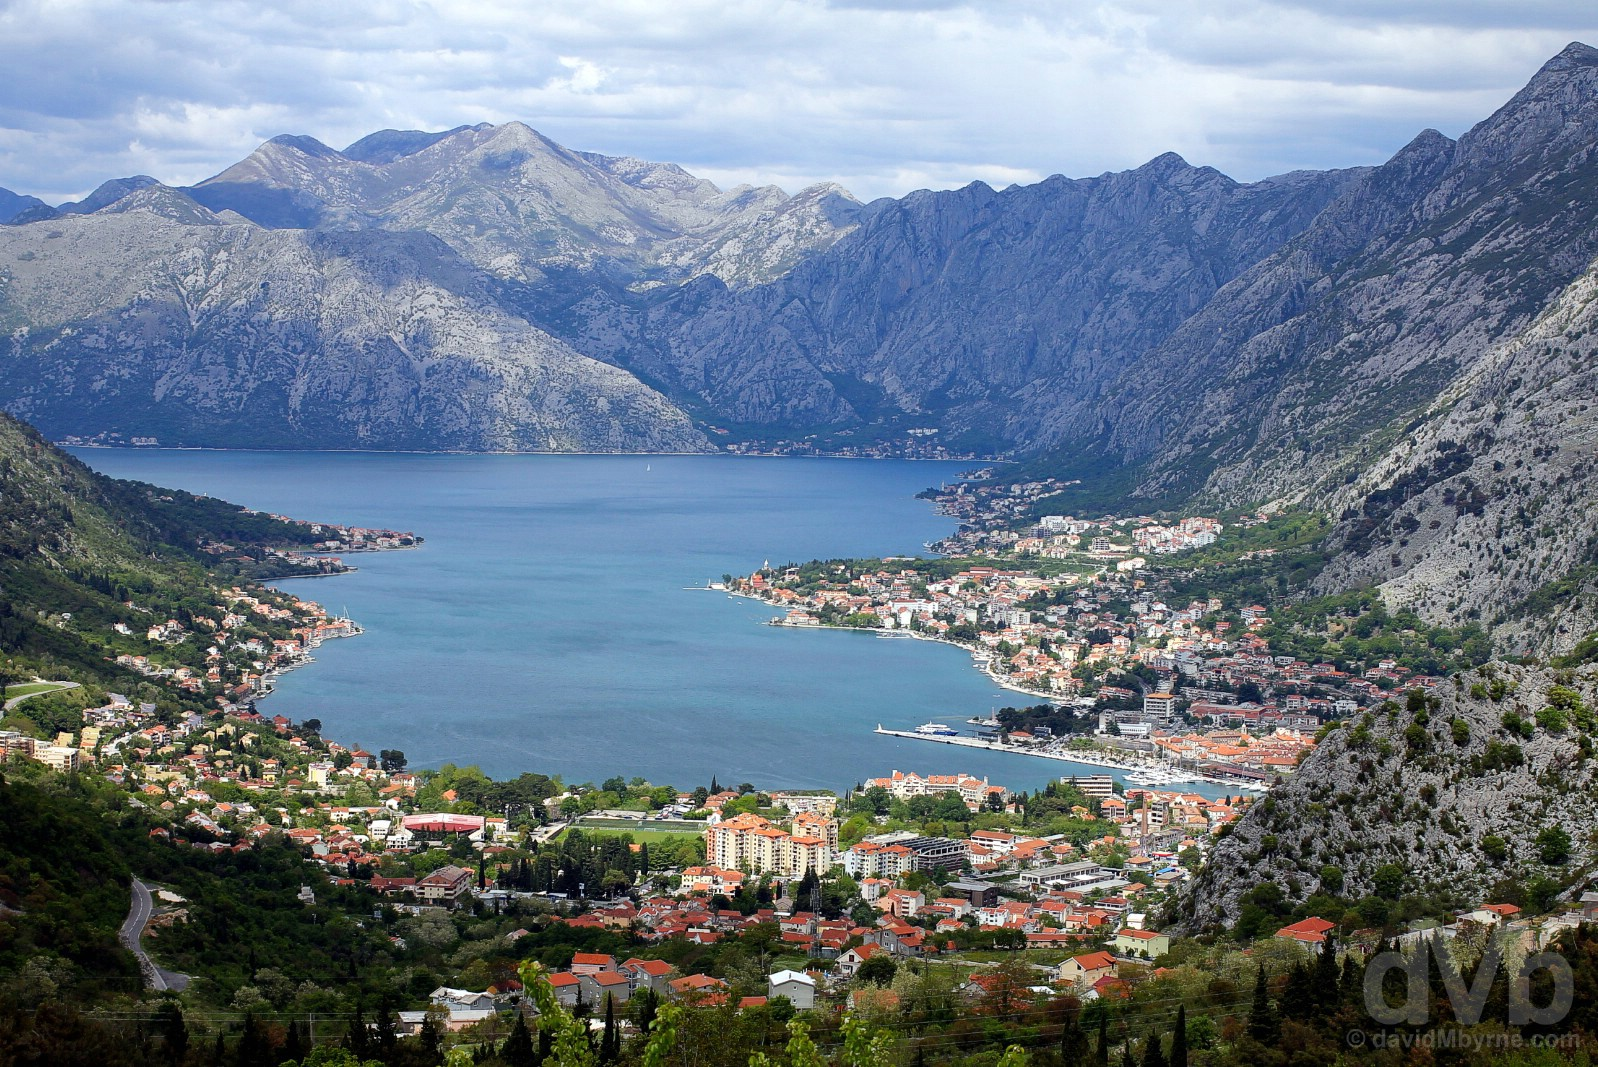 Kotor & the Bay of Kotor as seen from the road to Lovcen National Park, Montenegro. April 20, 2017.